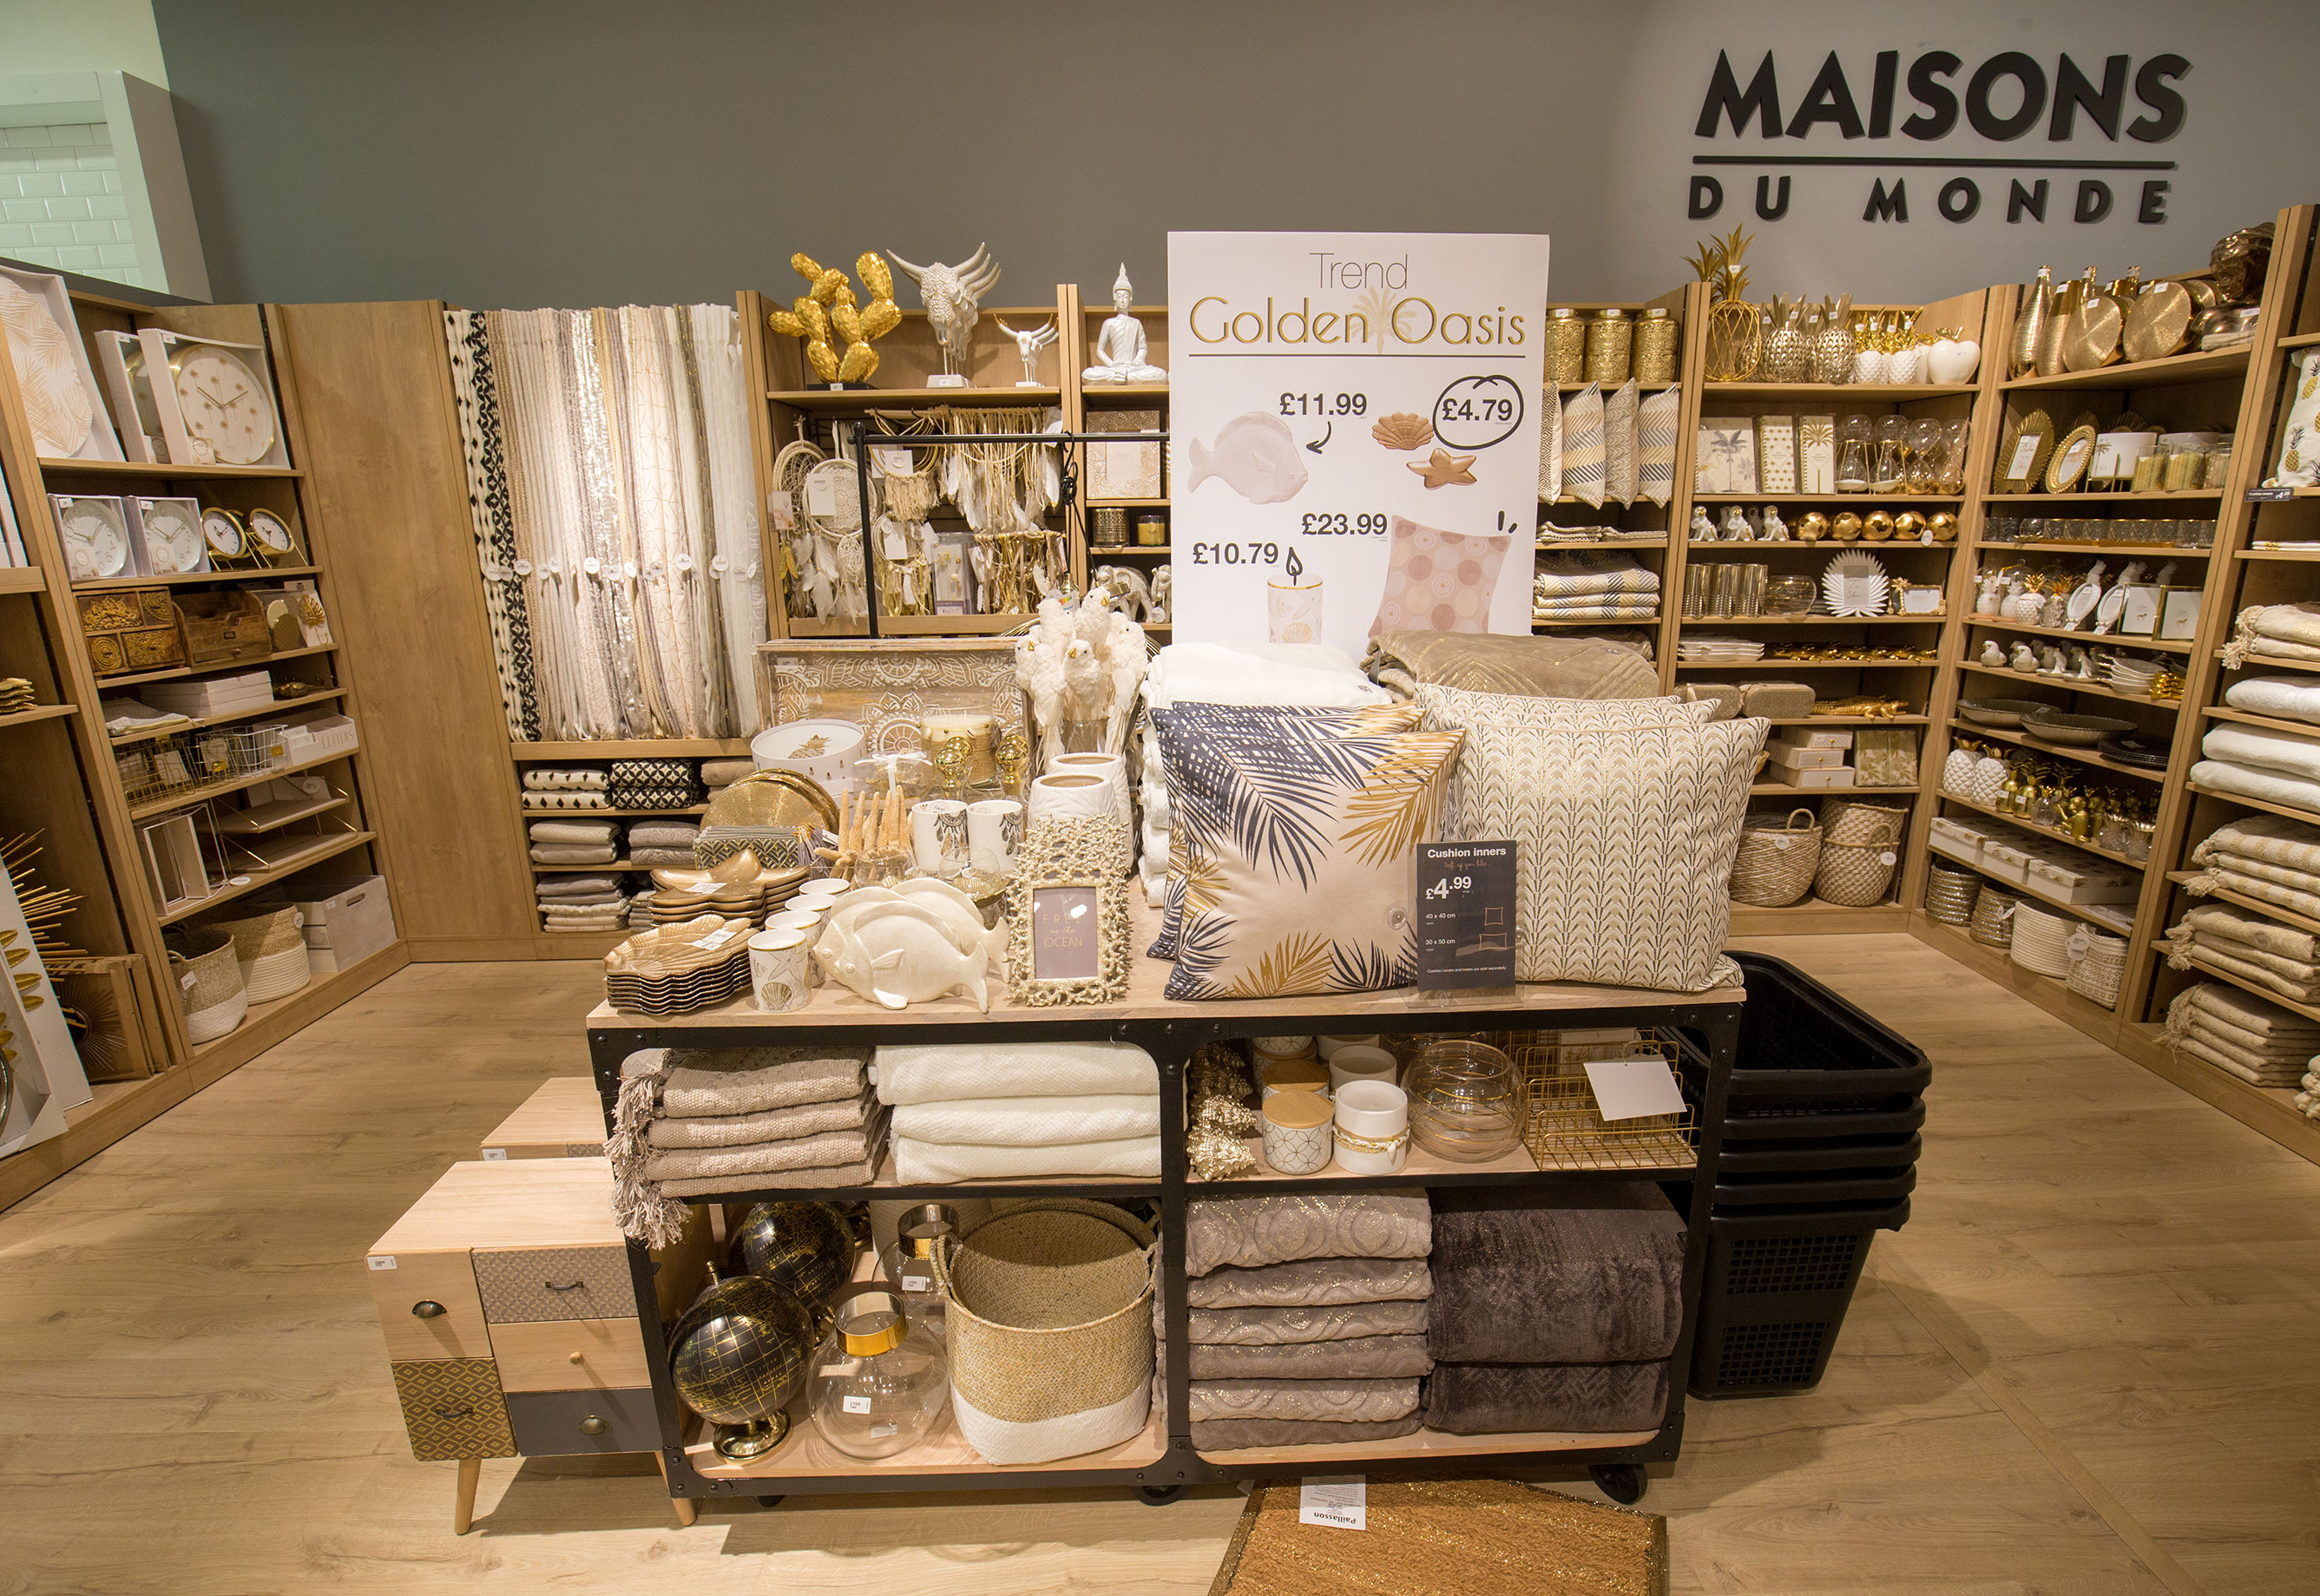 maisons du monde opened 3 concessions in london westfield birmingham and manchester in. Black Bedroom Furniture Sets. Home Design Ideas